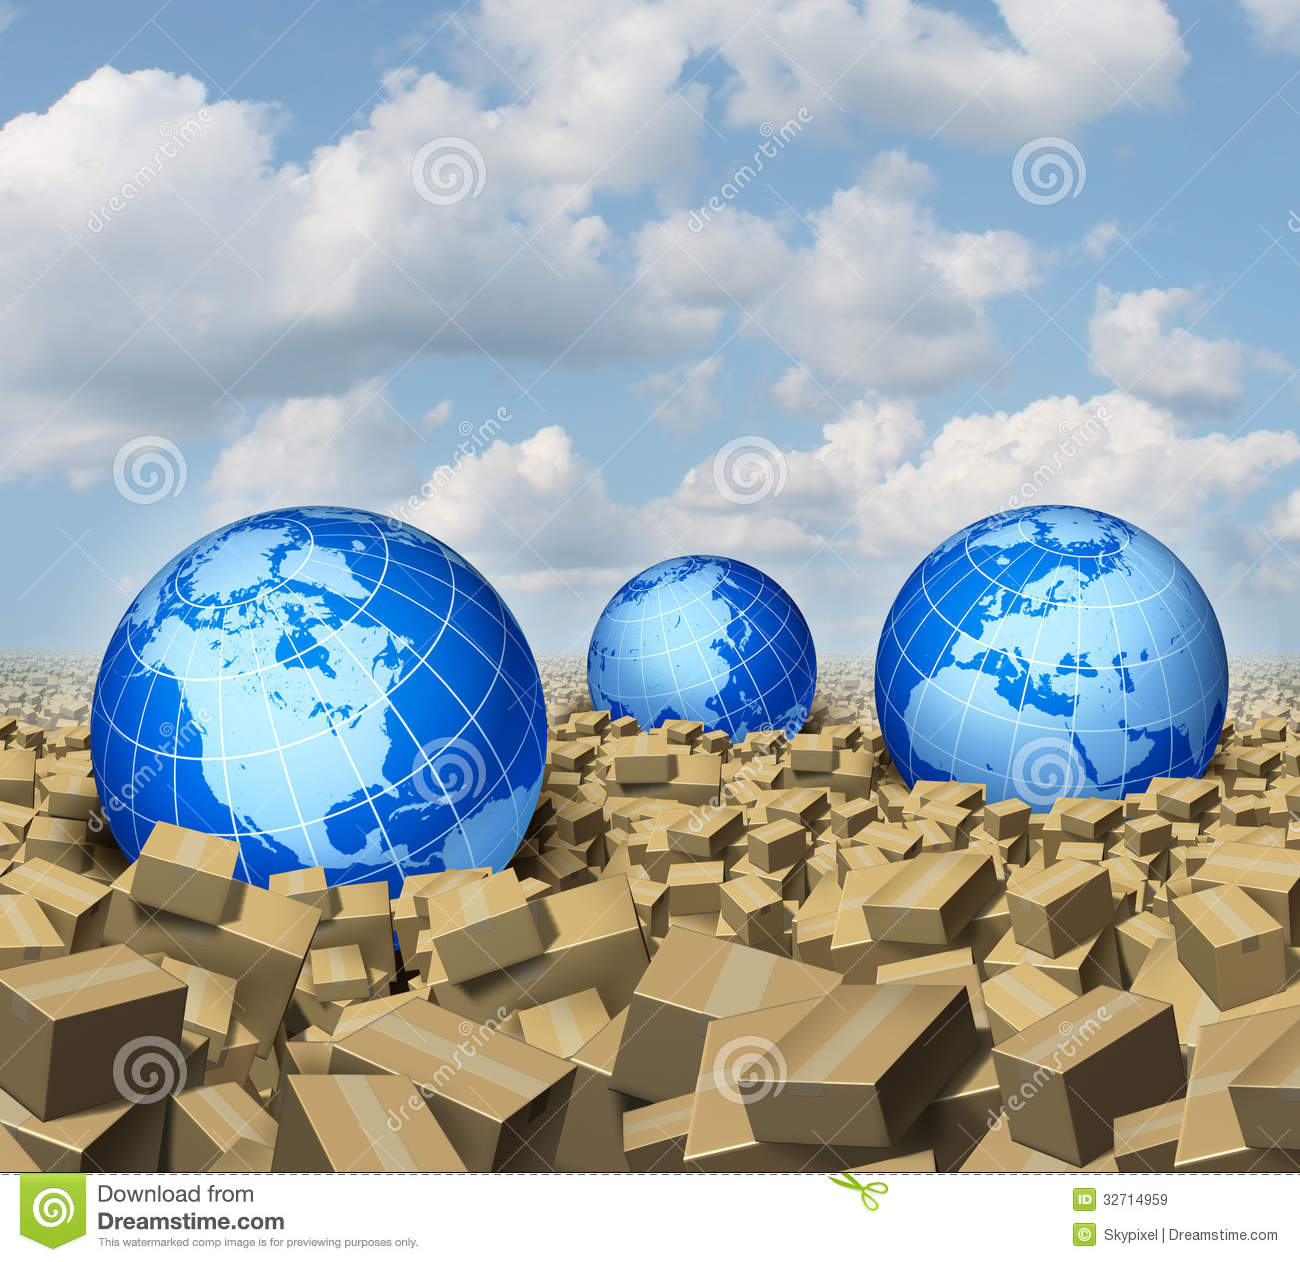 How does globalisation affect freight transport